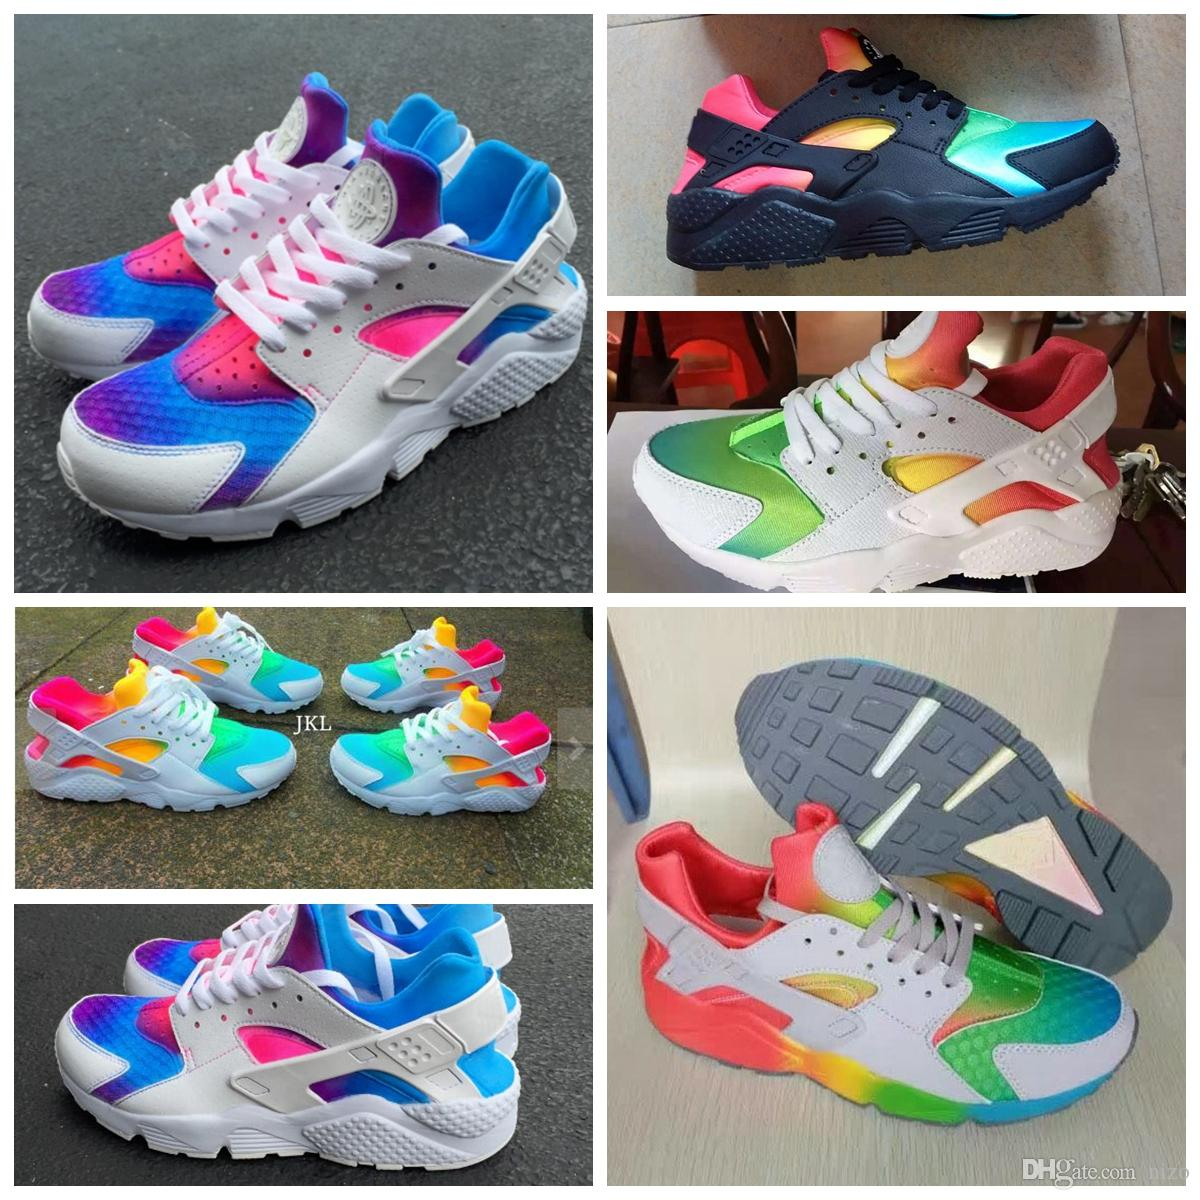 finest selection bdfc7 57a44 2016 Huarache Sneakers Women And Mens Huaraches Colorful White Huarache  Blue Running Shoes Sneakers Air Huarache Rainbow Shoes Size 36 45 Good  Running Shoes ...